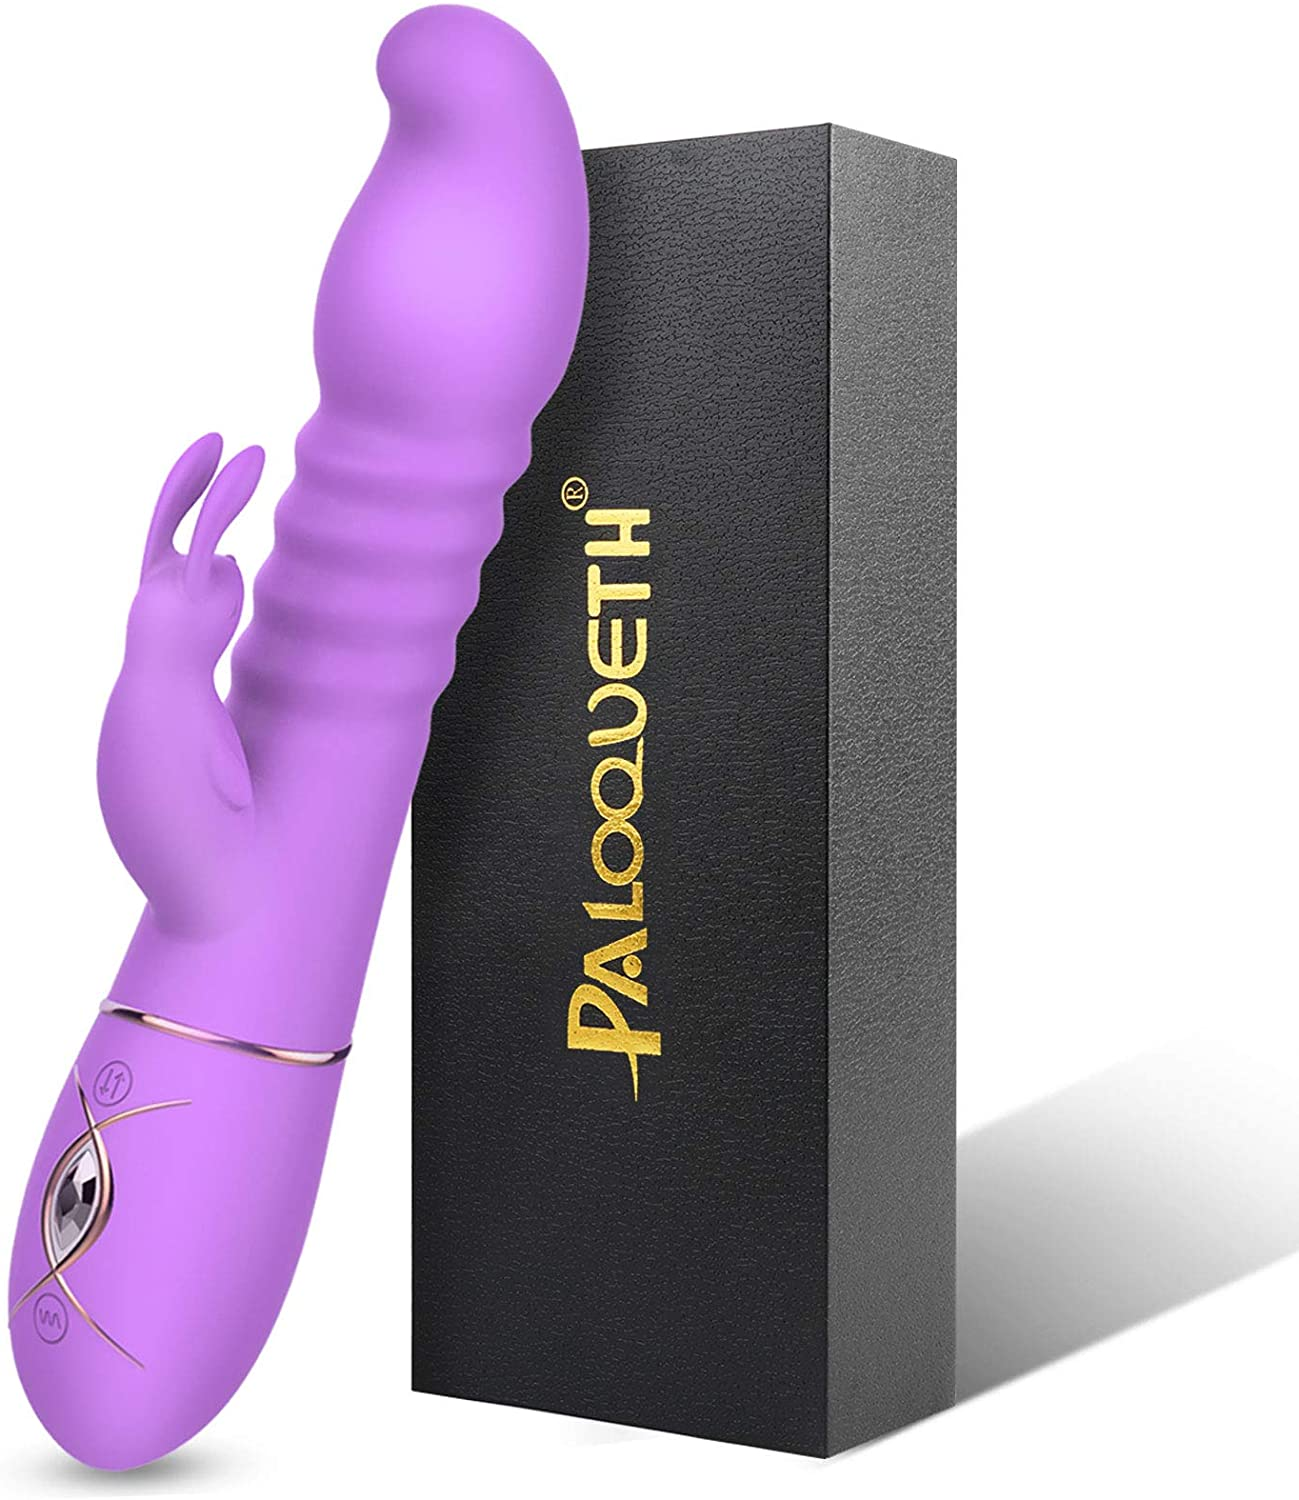 best rated thrusting vibrator 2021